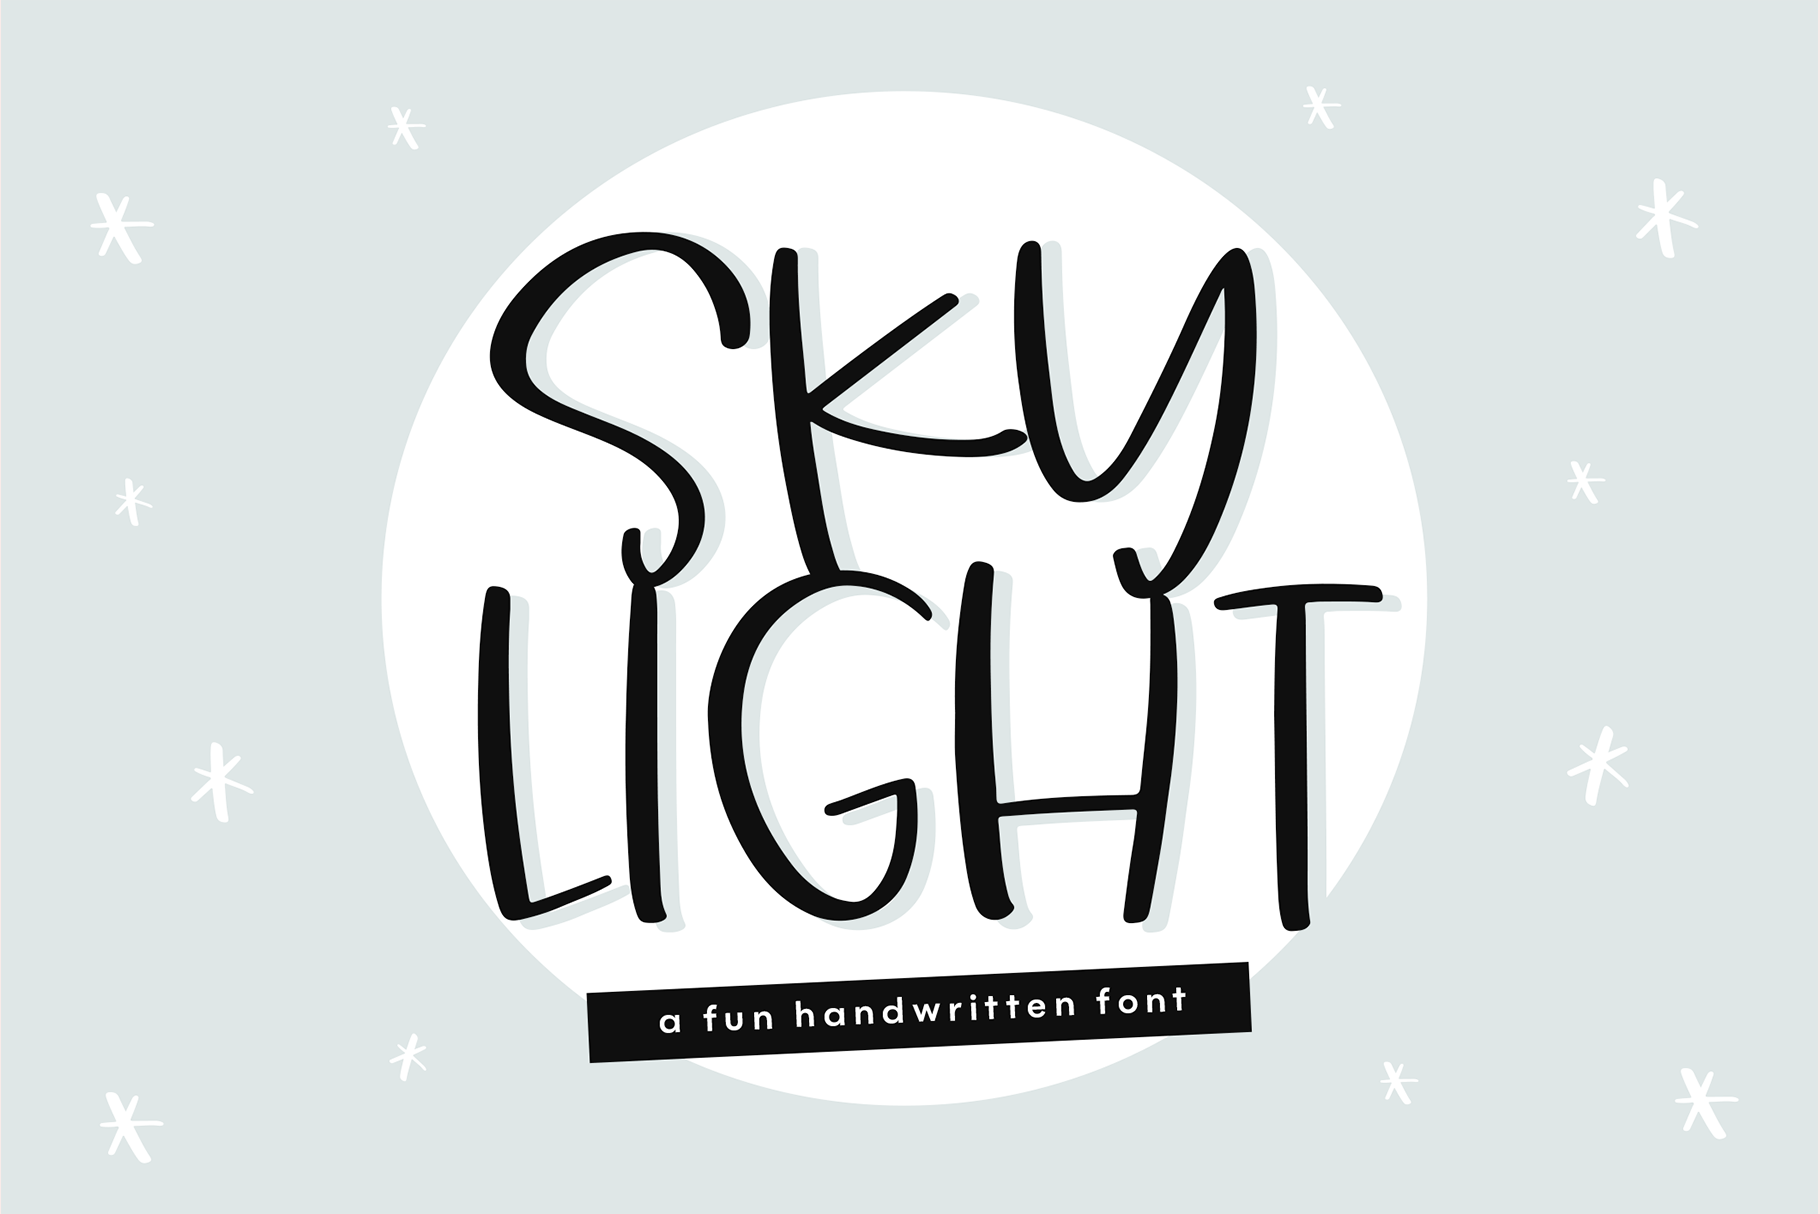 Sky Light - A Quirky Handwritten Font example image 1